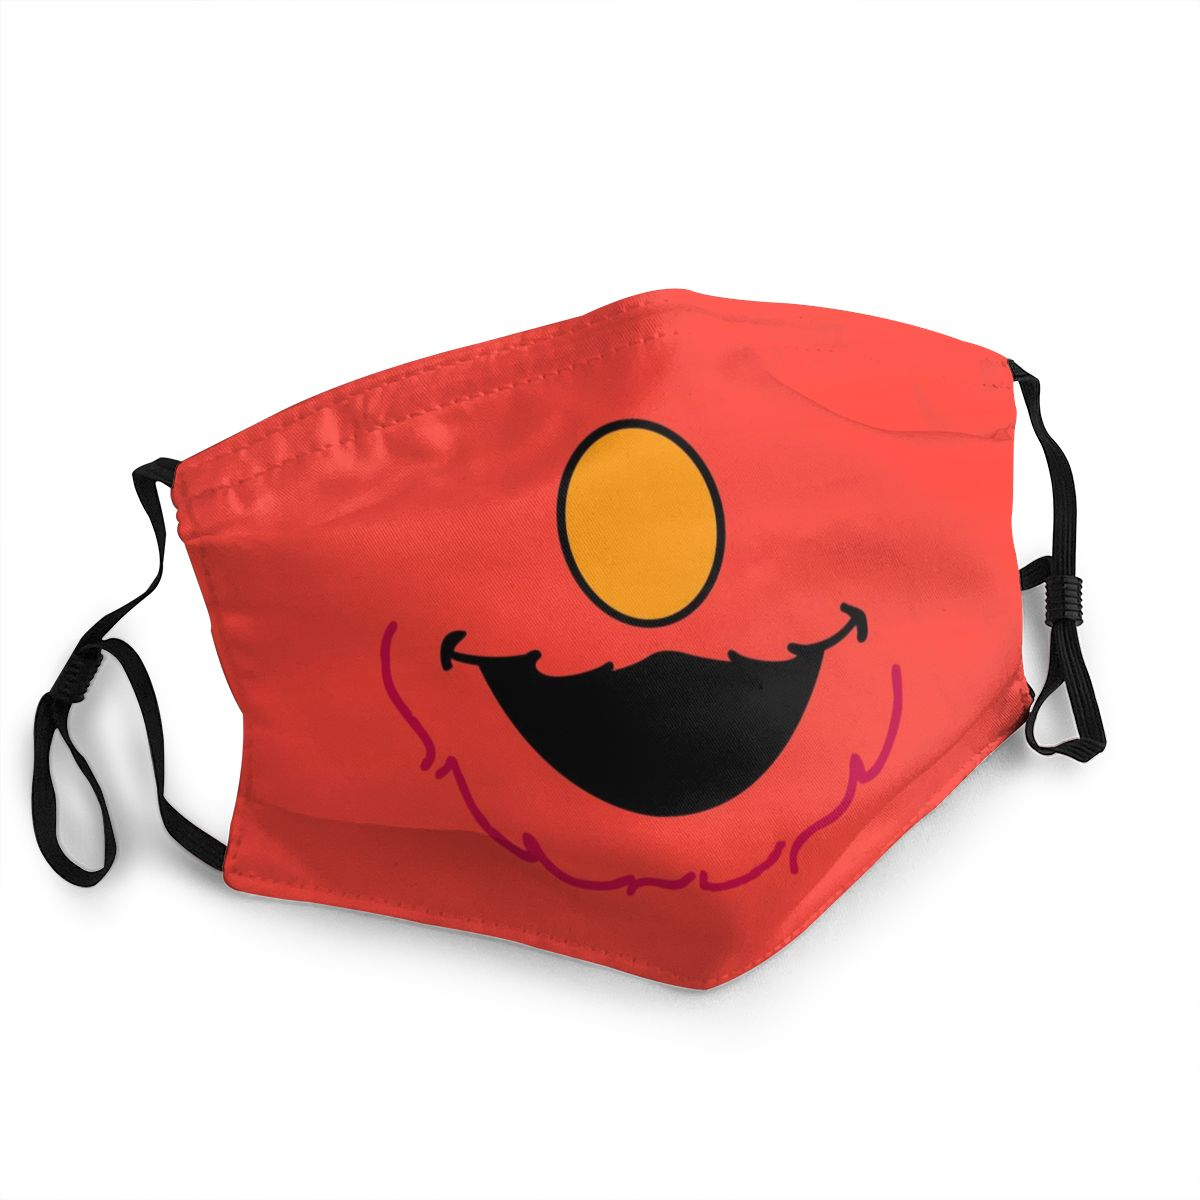 Sesame Street Reusable Face Mask Cute Cartoon Anti Bacterial Dust Mask Protection Mask Respirator Mouth Muffle